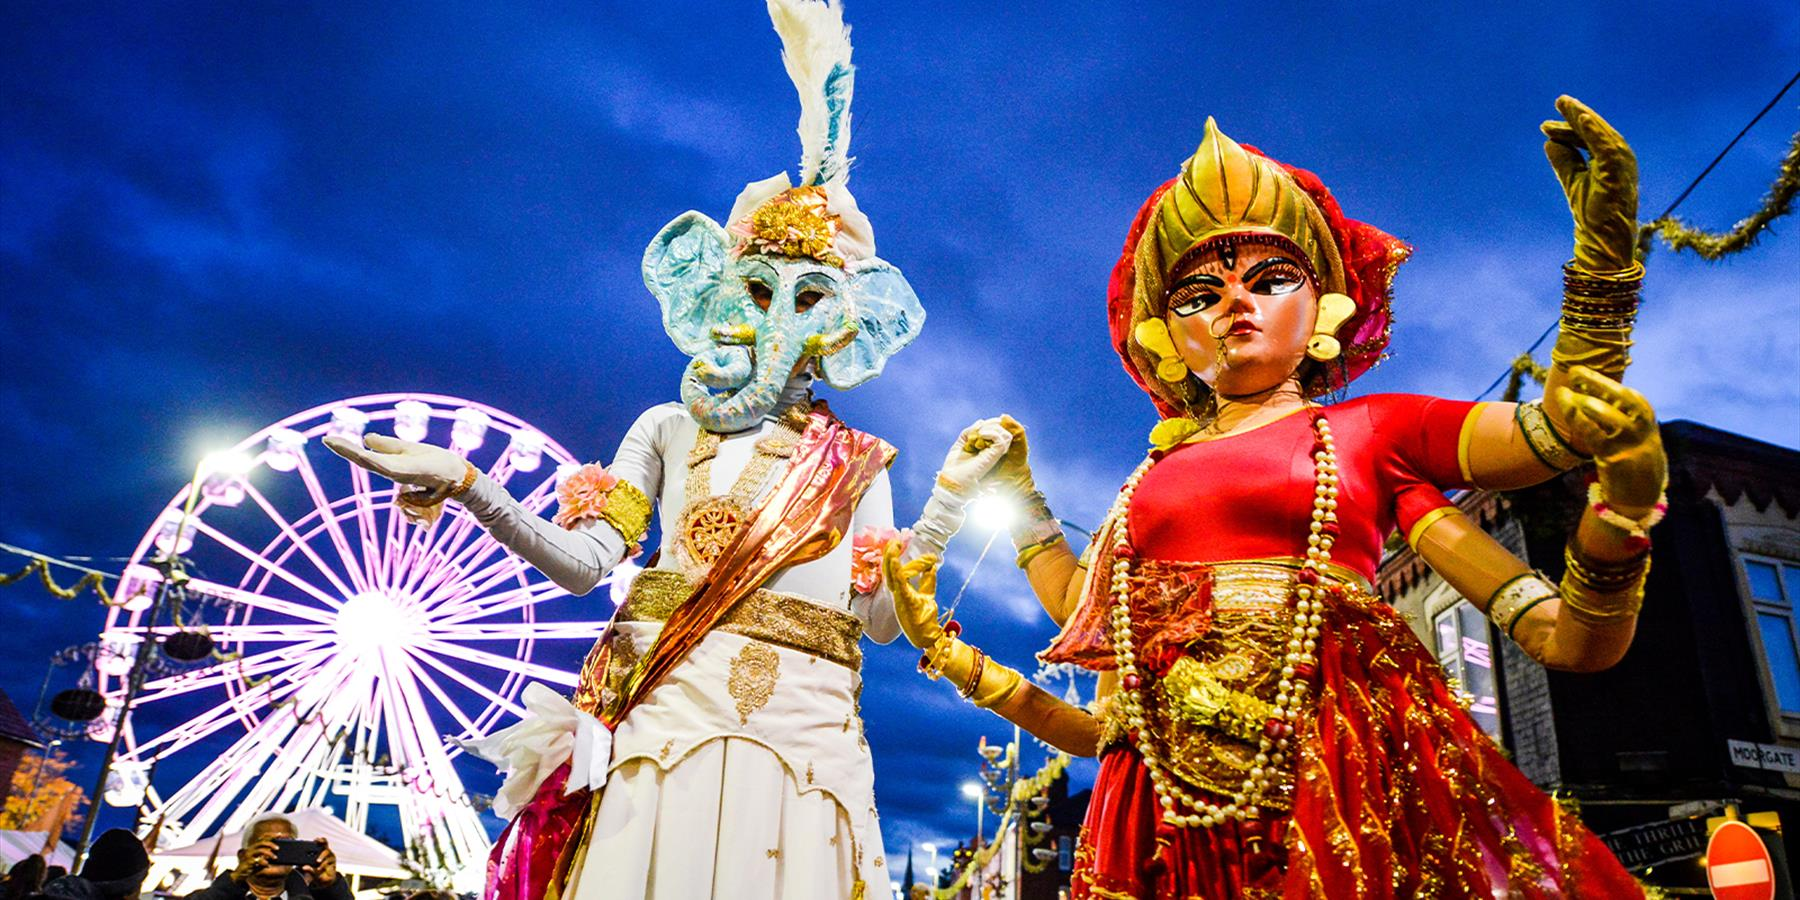 golden mile figures with wheel in background on diwali